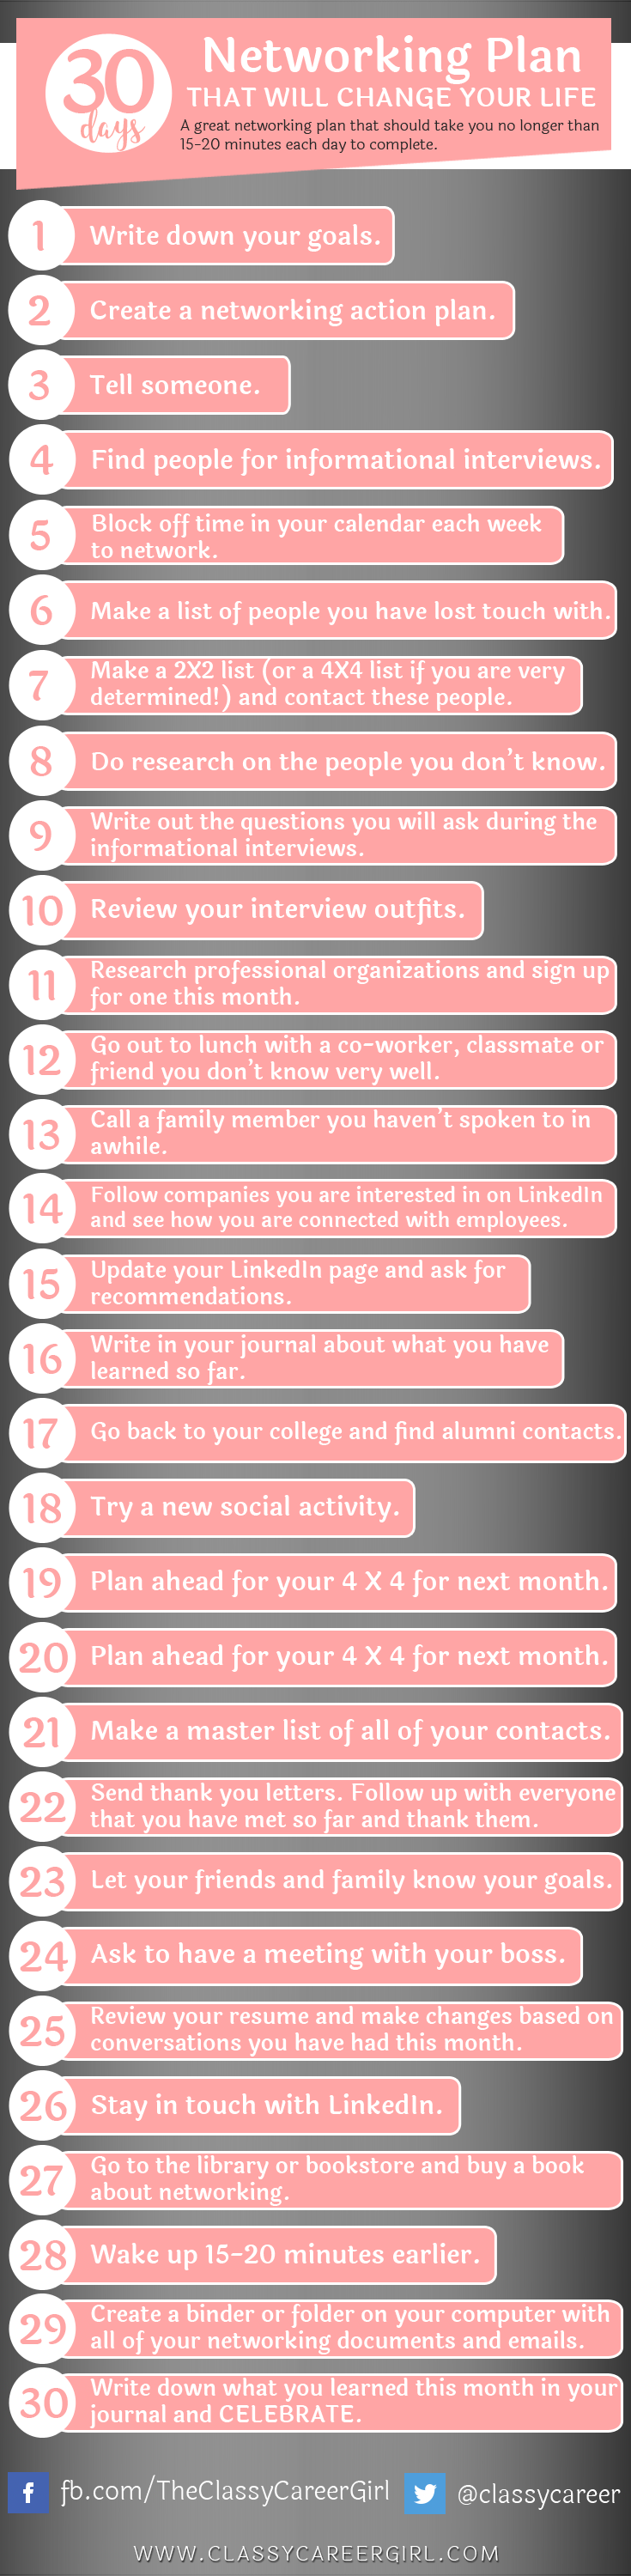 this is exactly how to answer impossible interview questions the 30 day networking plan that will change your life